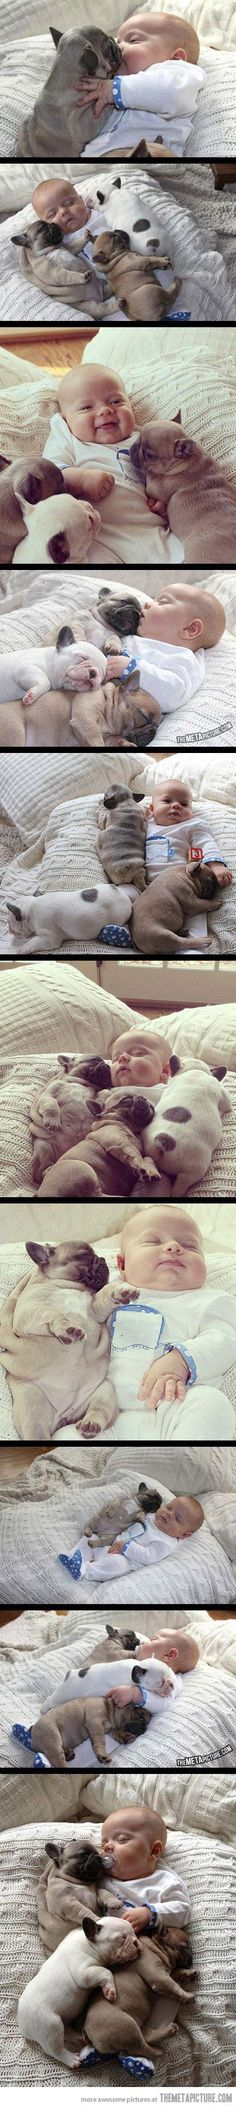 cute-baby-puppies-bed-smiling